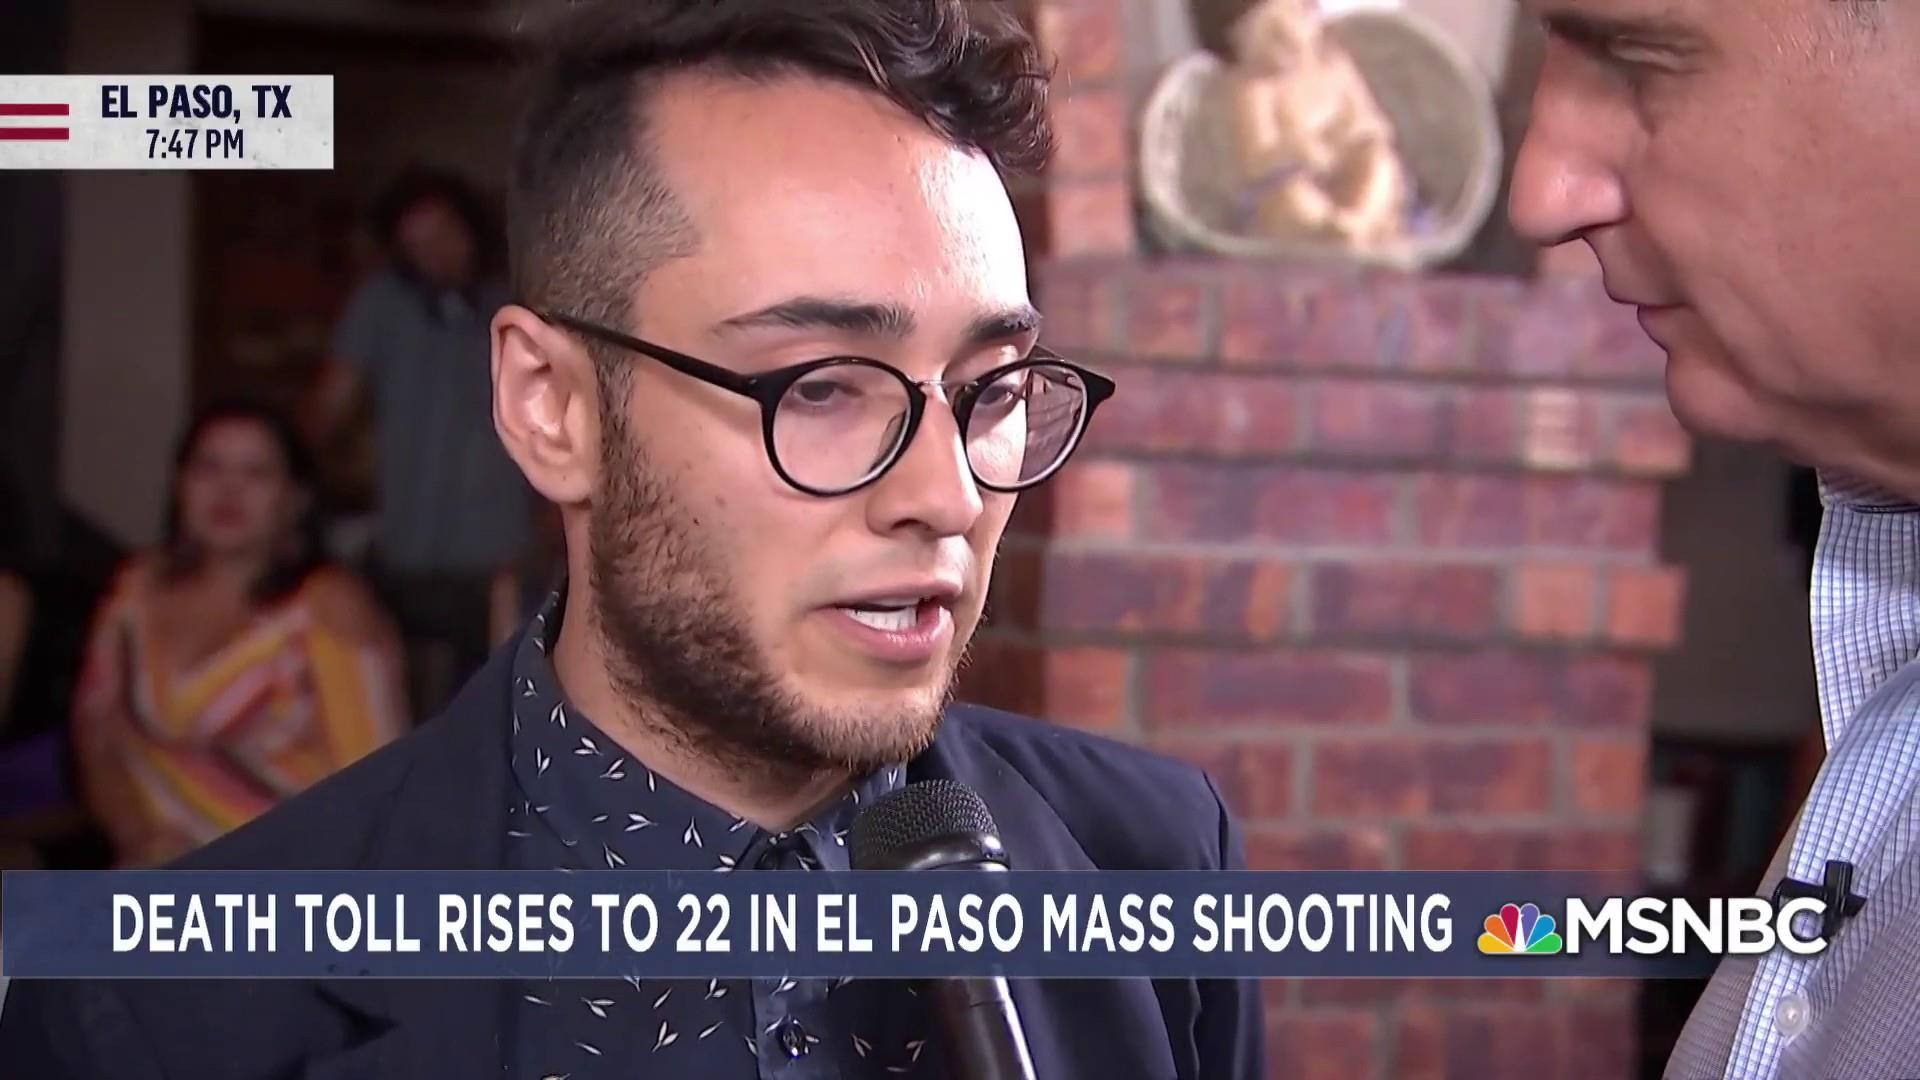 Gun massacre leaves El Paso community terrorized, angry